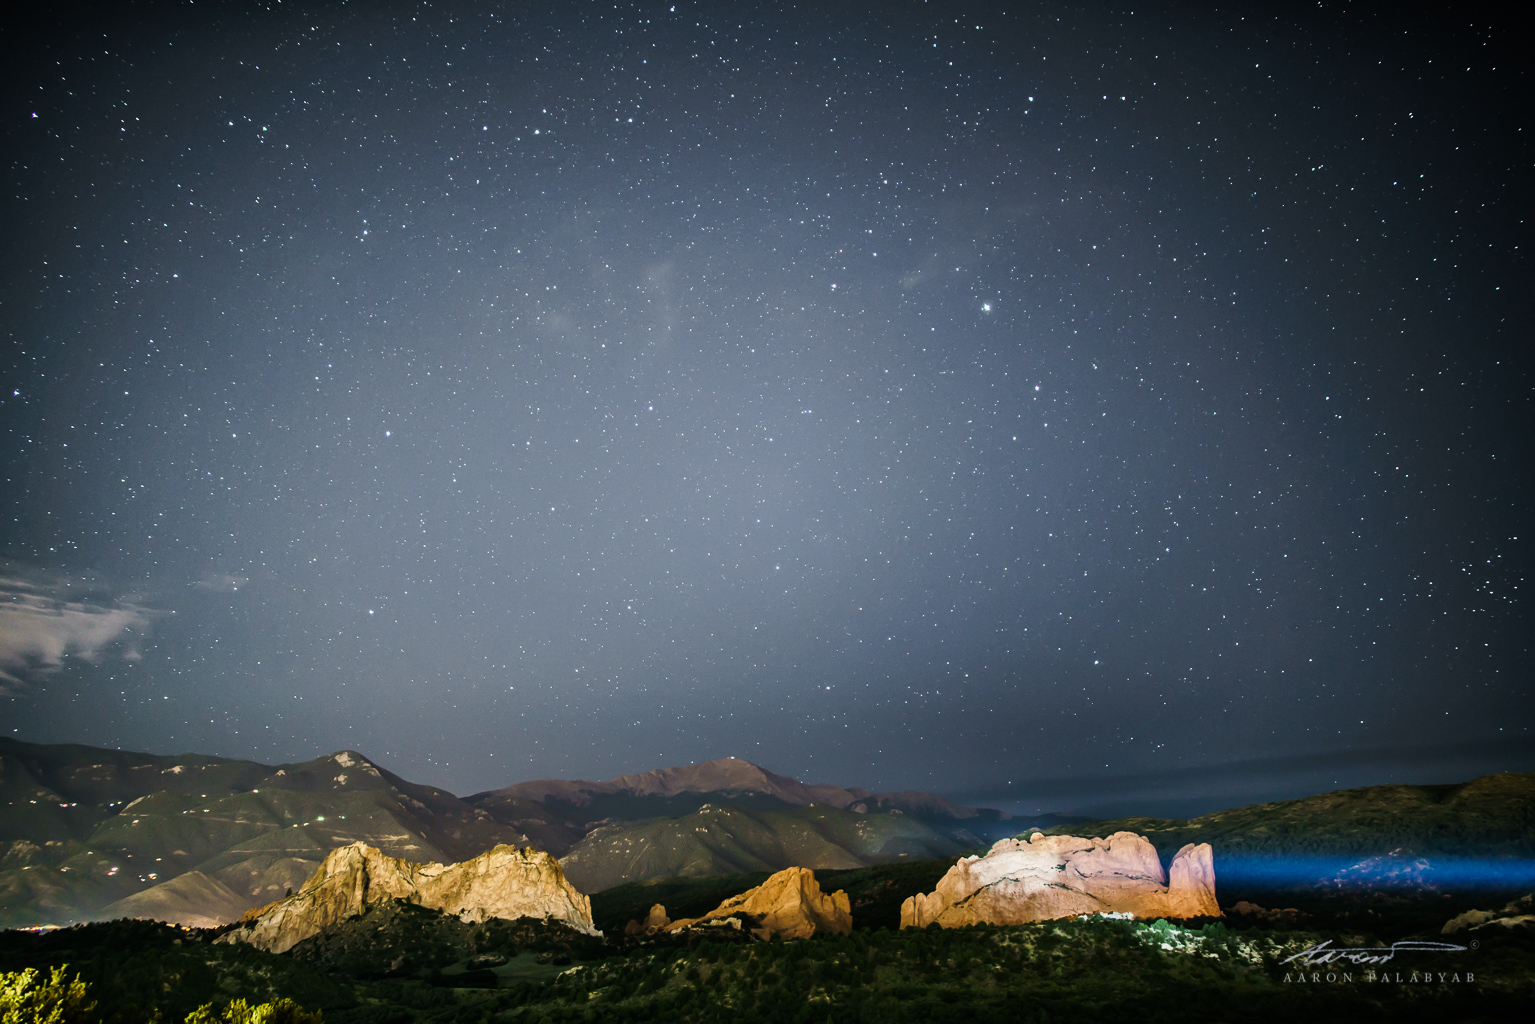 Stars over Pike's Peak and the Garden of the Gods, with a spotlight falling on (I think) the Kissing Camels rock formation